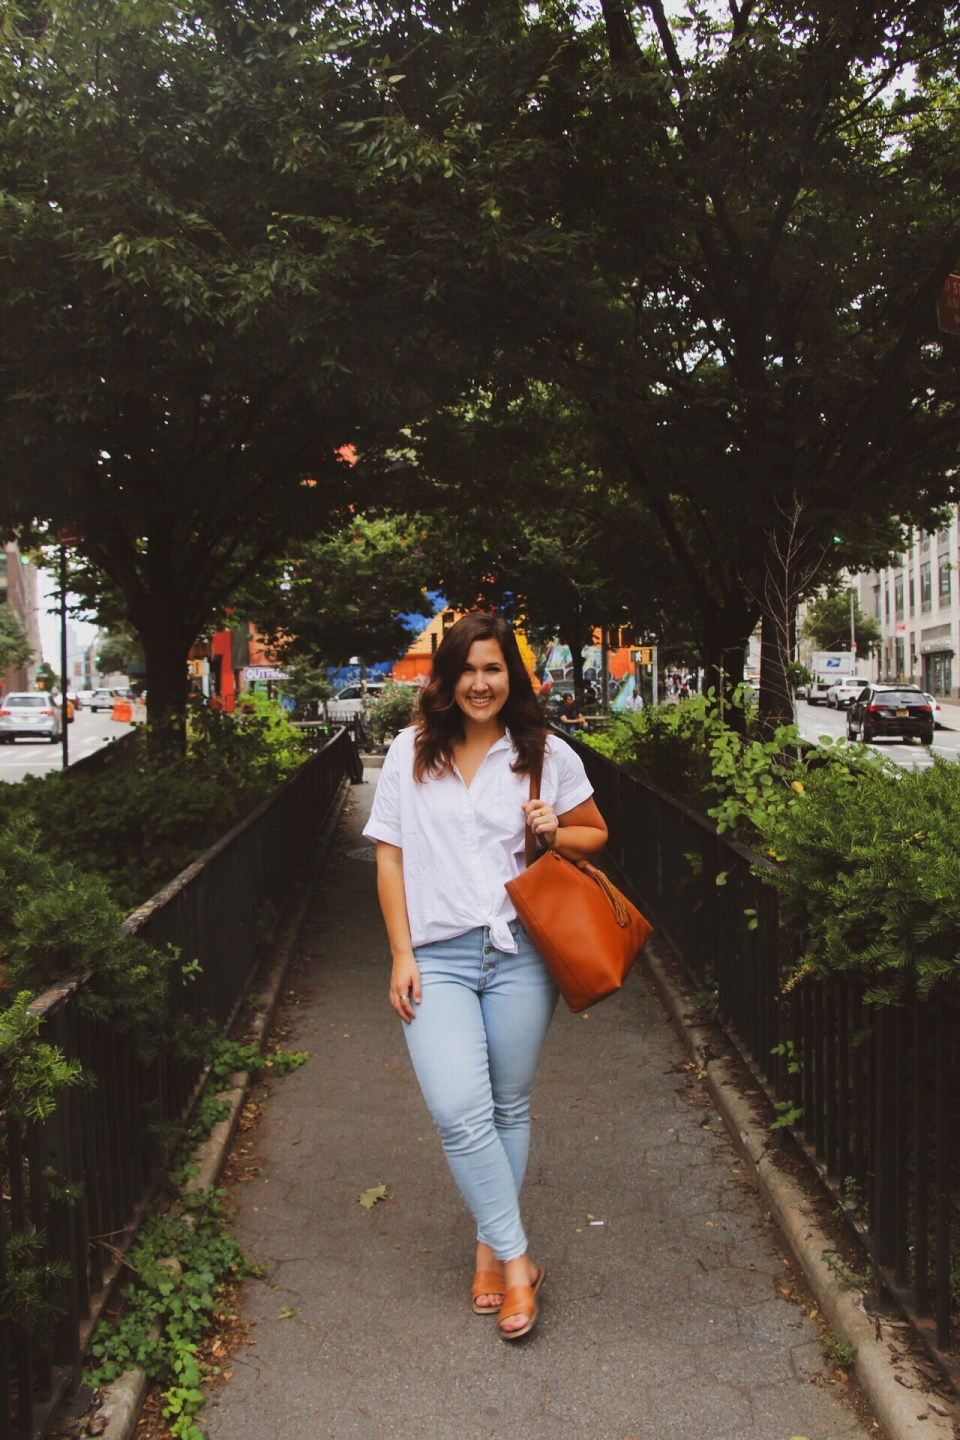 Let's talk about Madewell Fair Trade Denim + What That Means